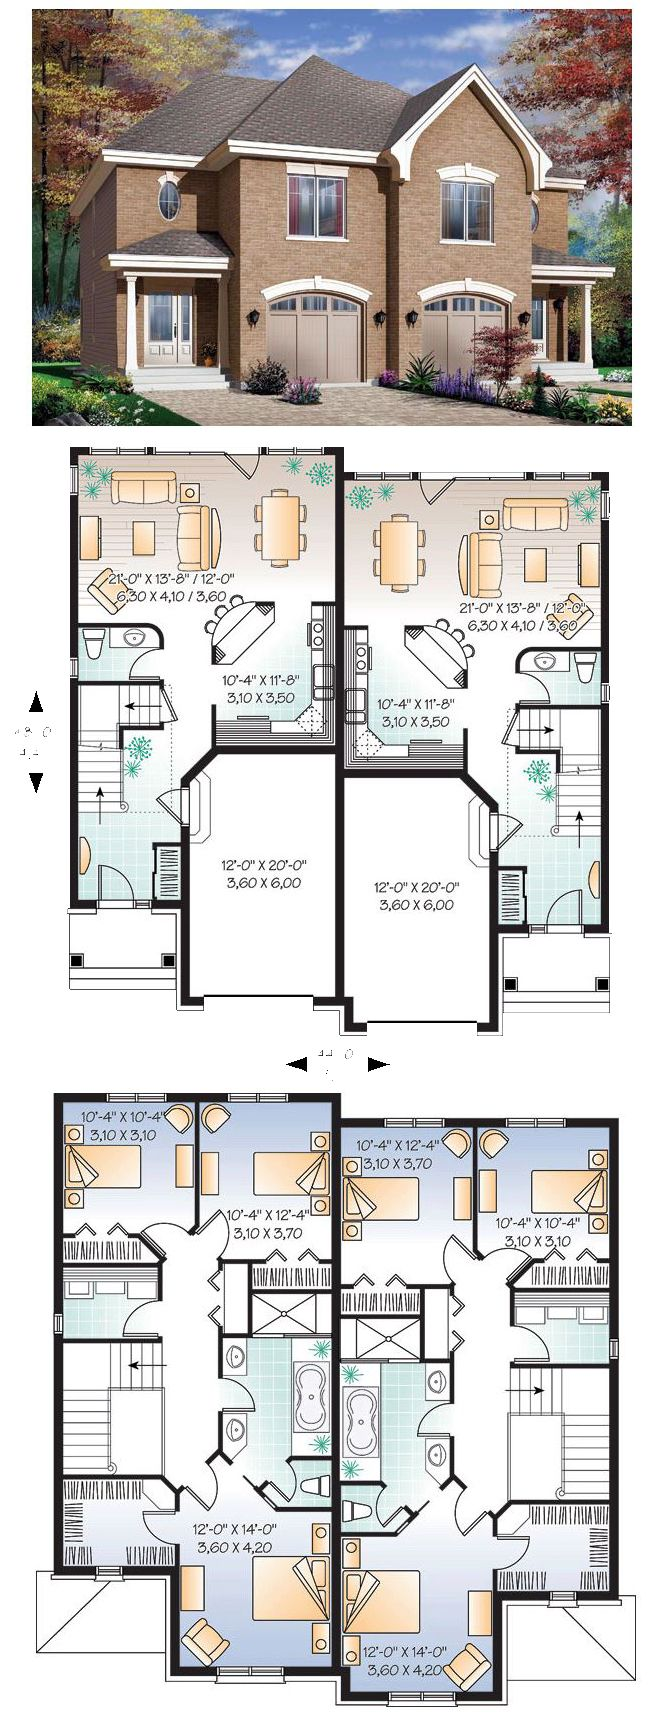 Best 25 duplex house plans ideas on pinterest duplex for 4 unit multi family house plans